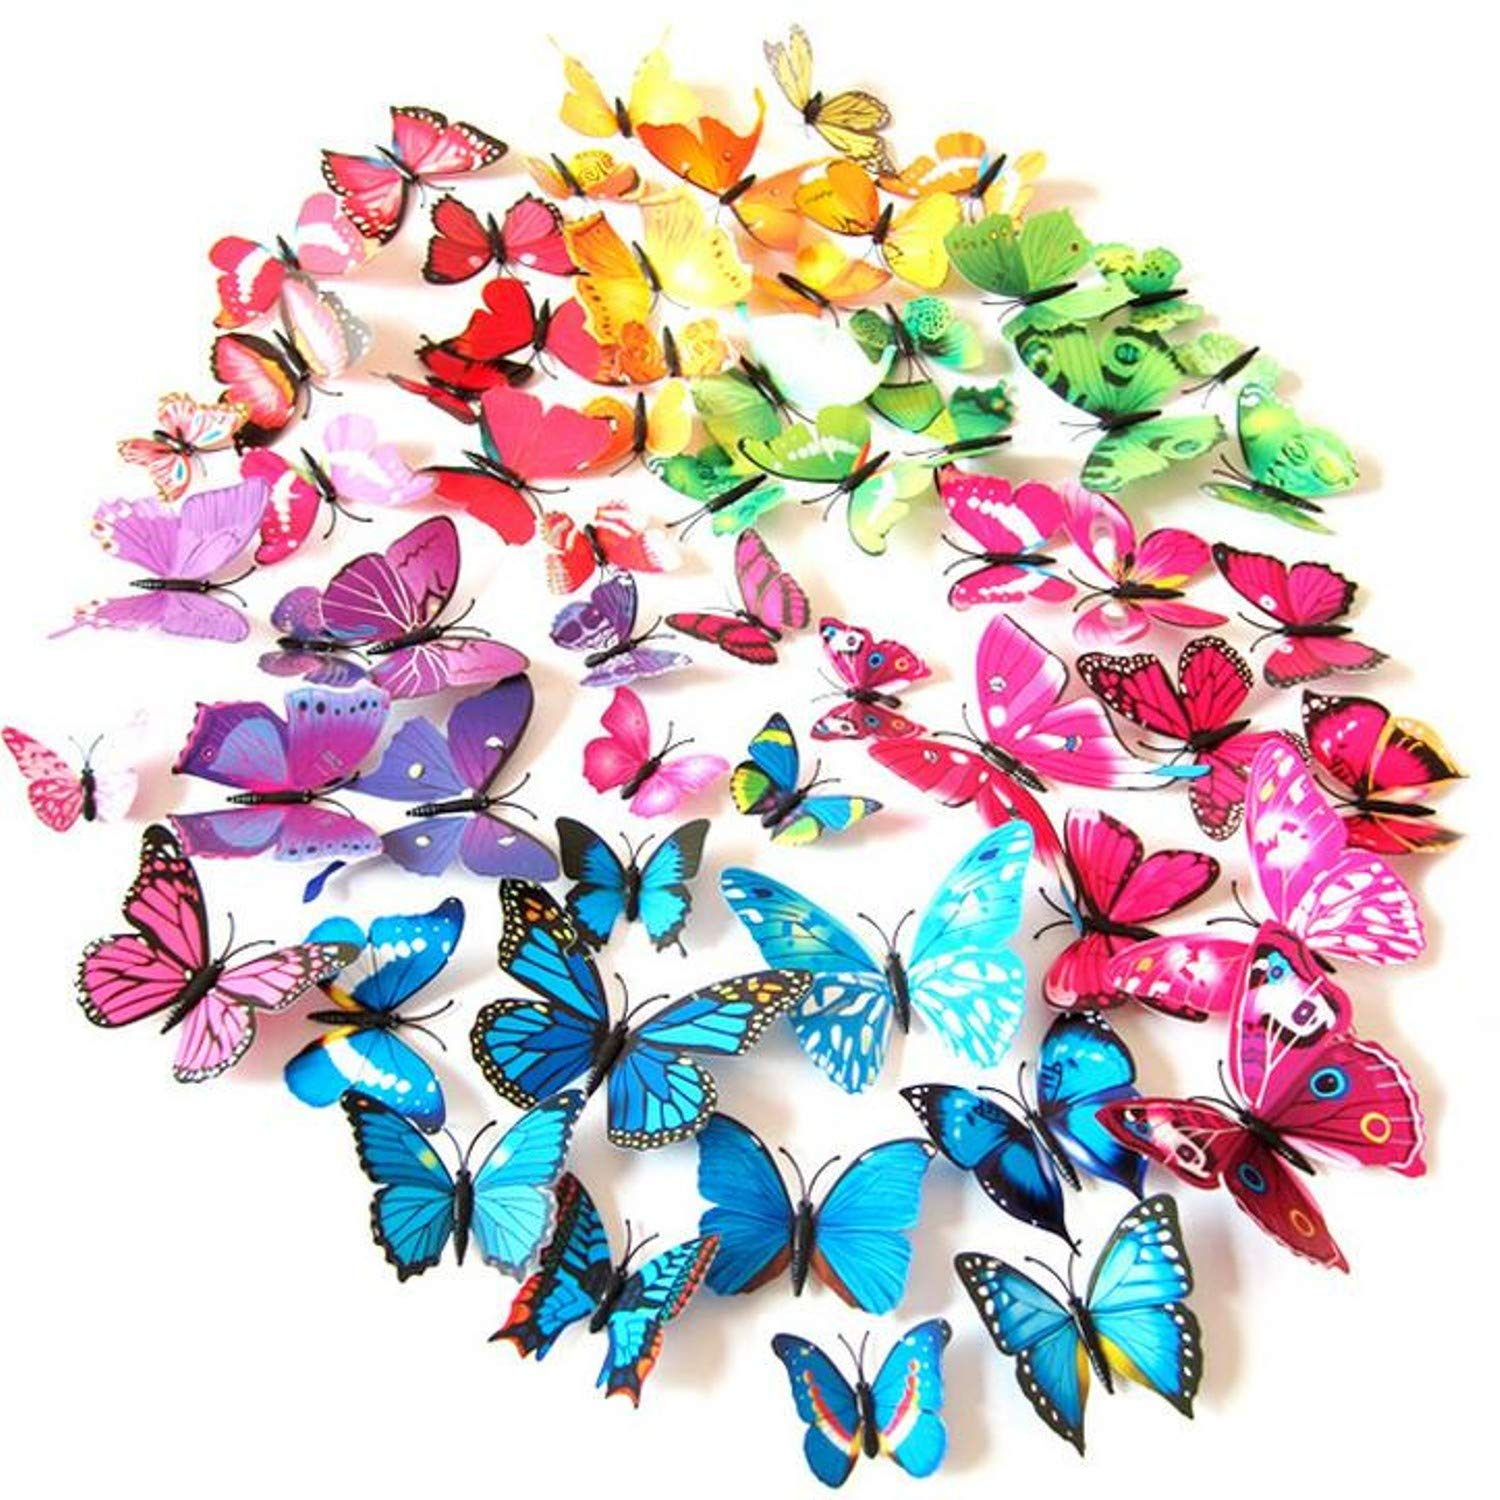 Amazon.com: Batop (12 Pcs/Lot PVC 3D DIY Butterfly Wall Stickers - Home Decor Poster for Kitchen Bathroom - Fridge Adhesive to Wall Decals Decoration ...